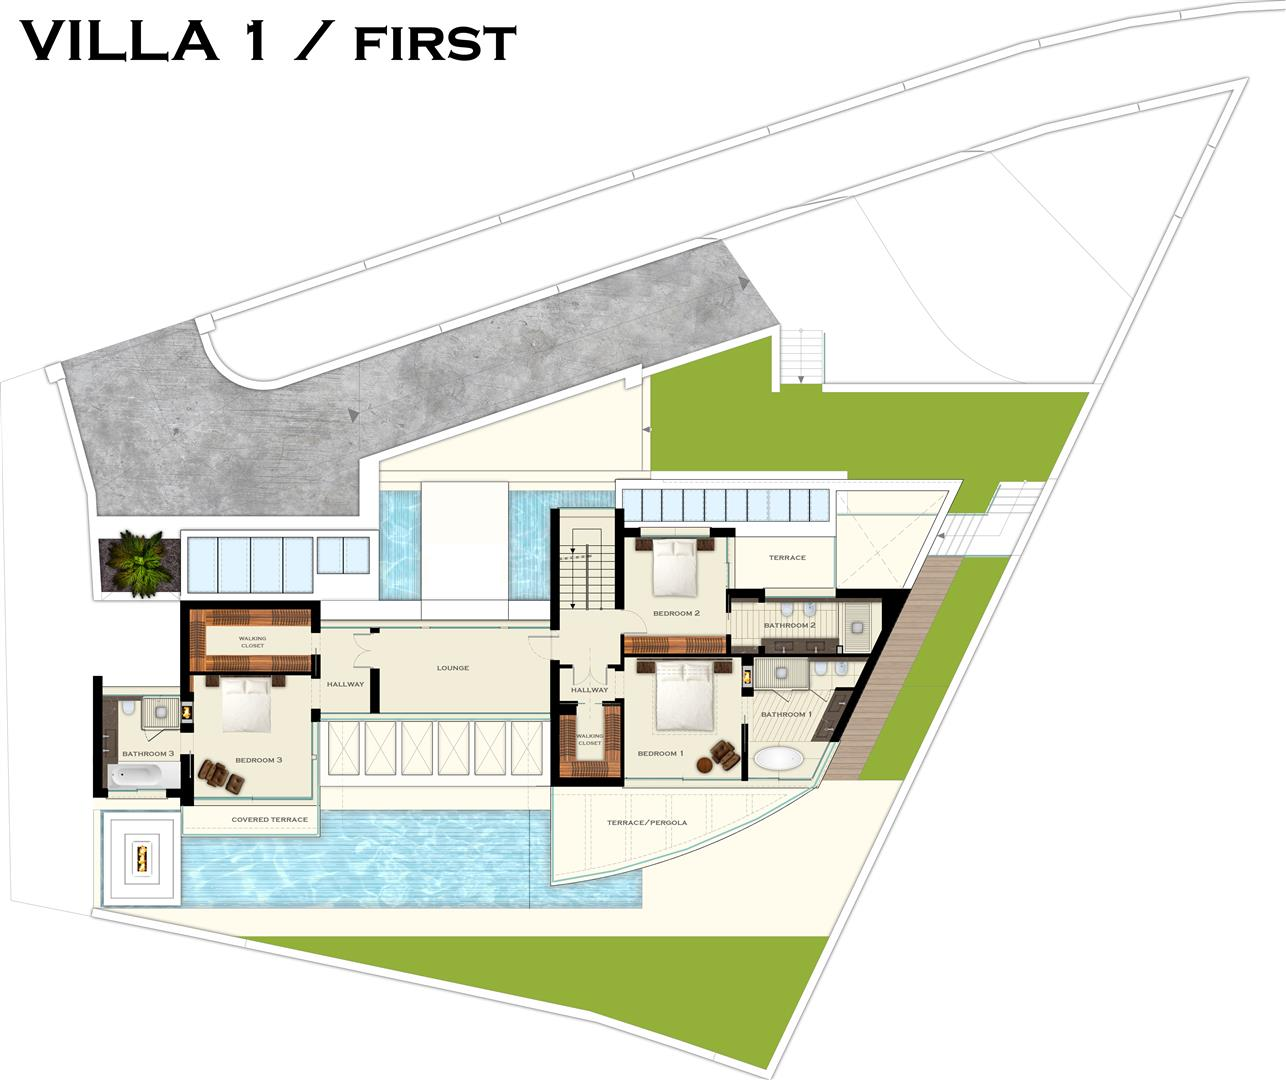 PLANS VILLA1-FIRST (Large)